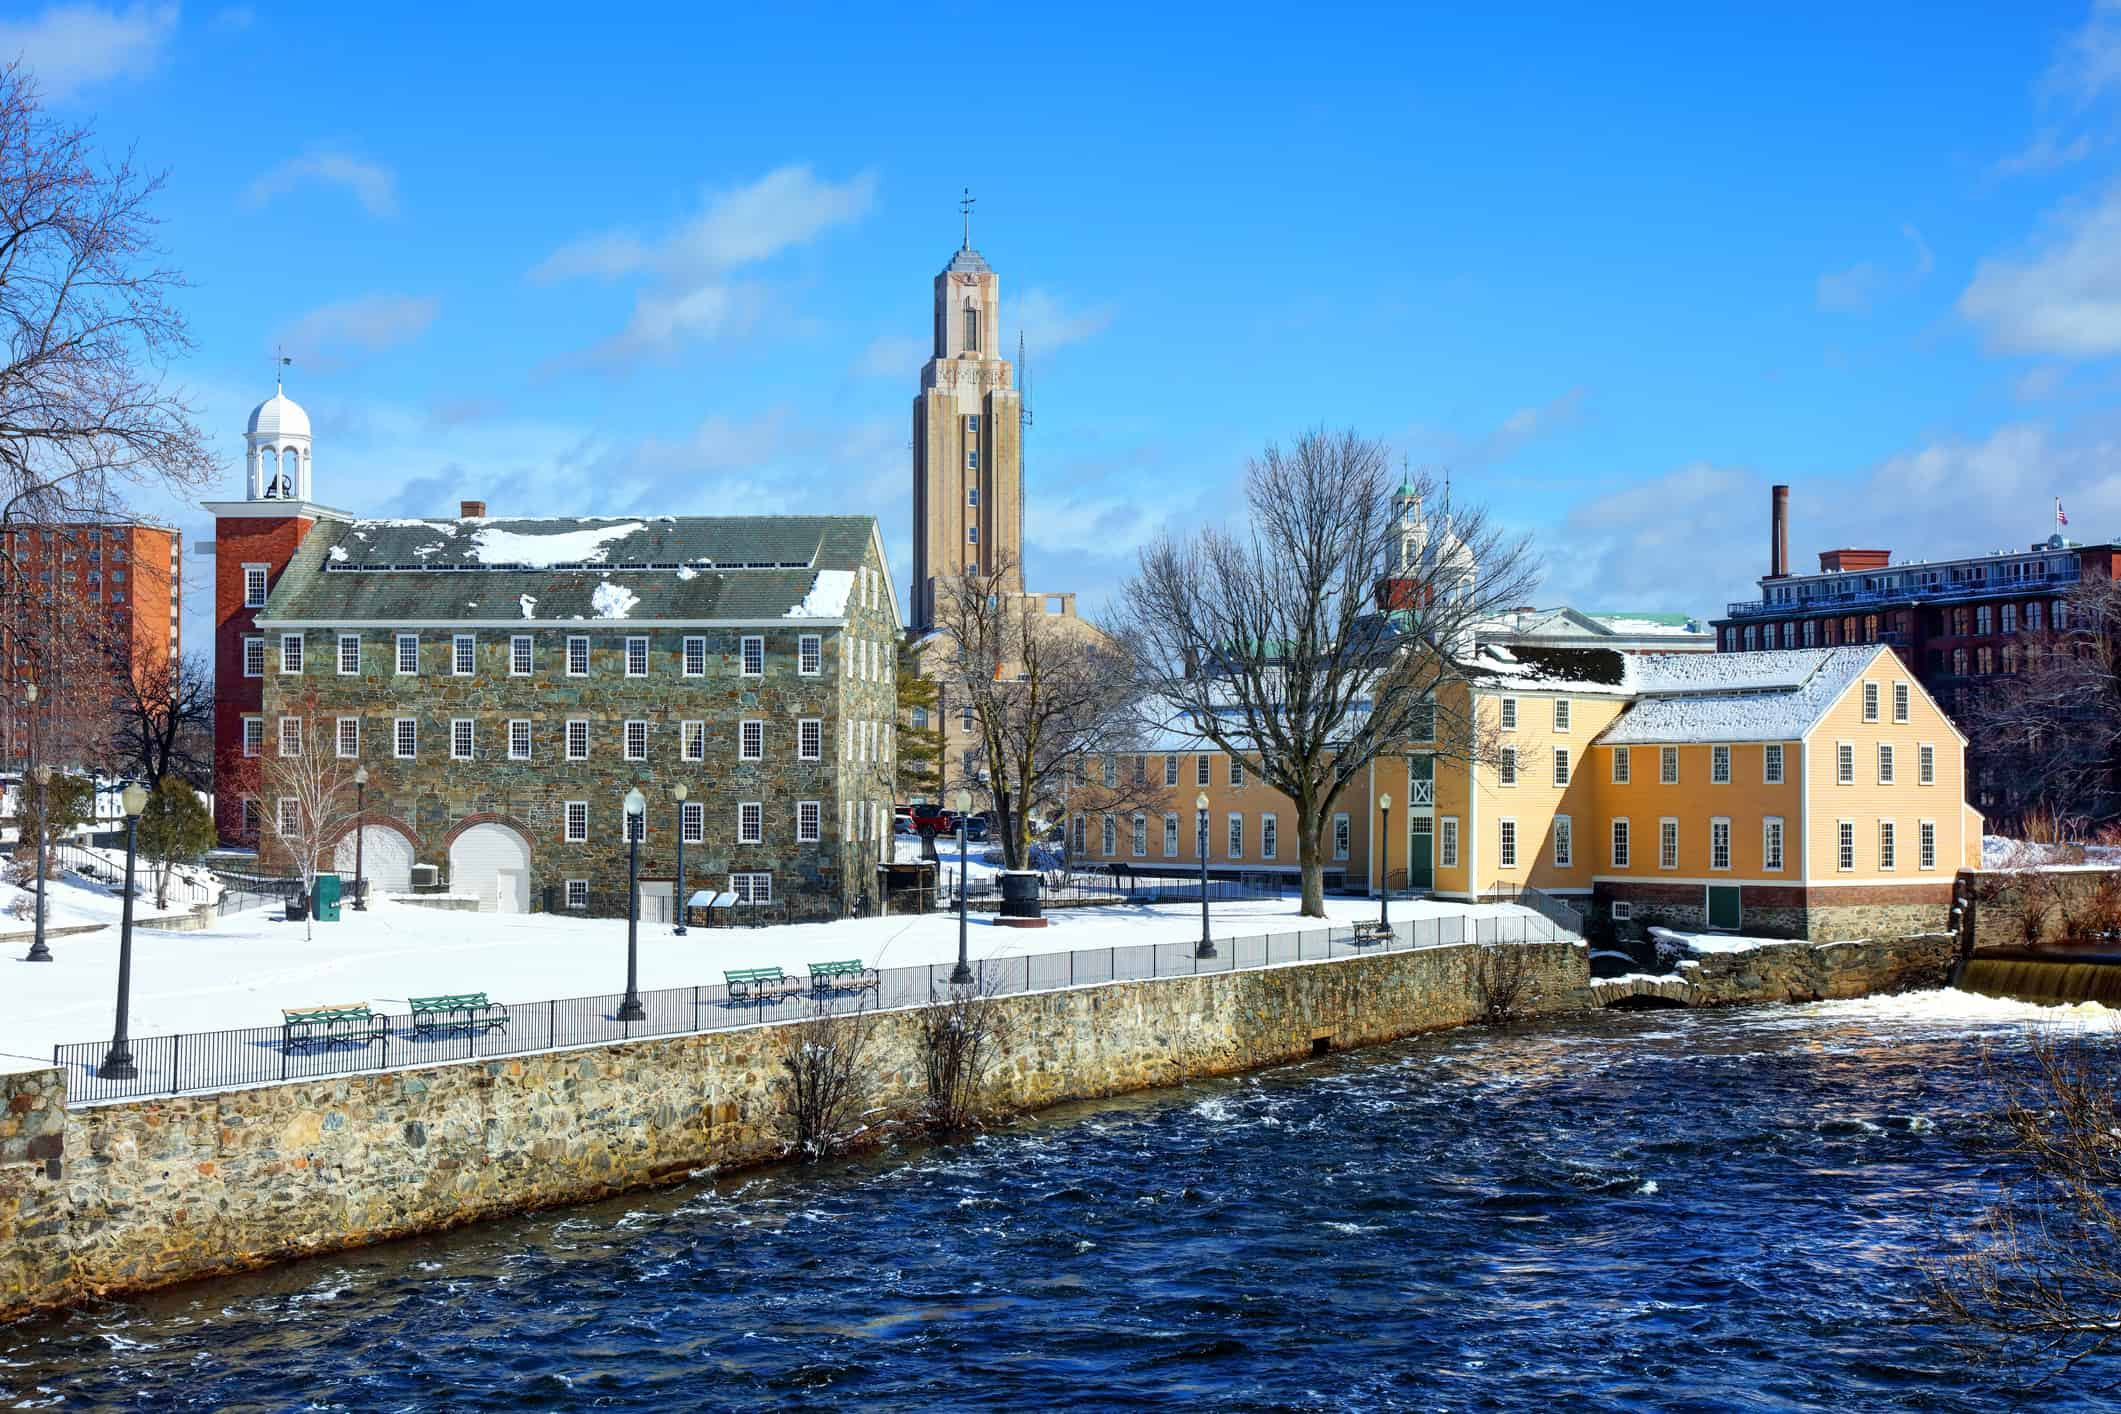 Pawtucket is a city in Providence County, Rhode Island, United States.